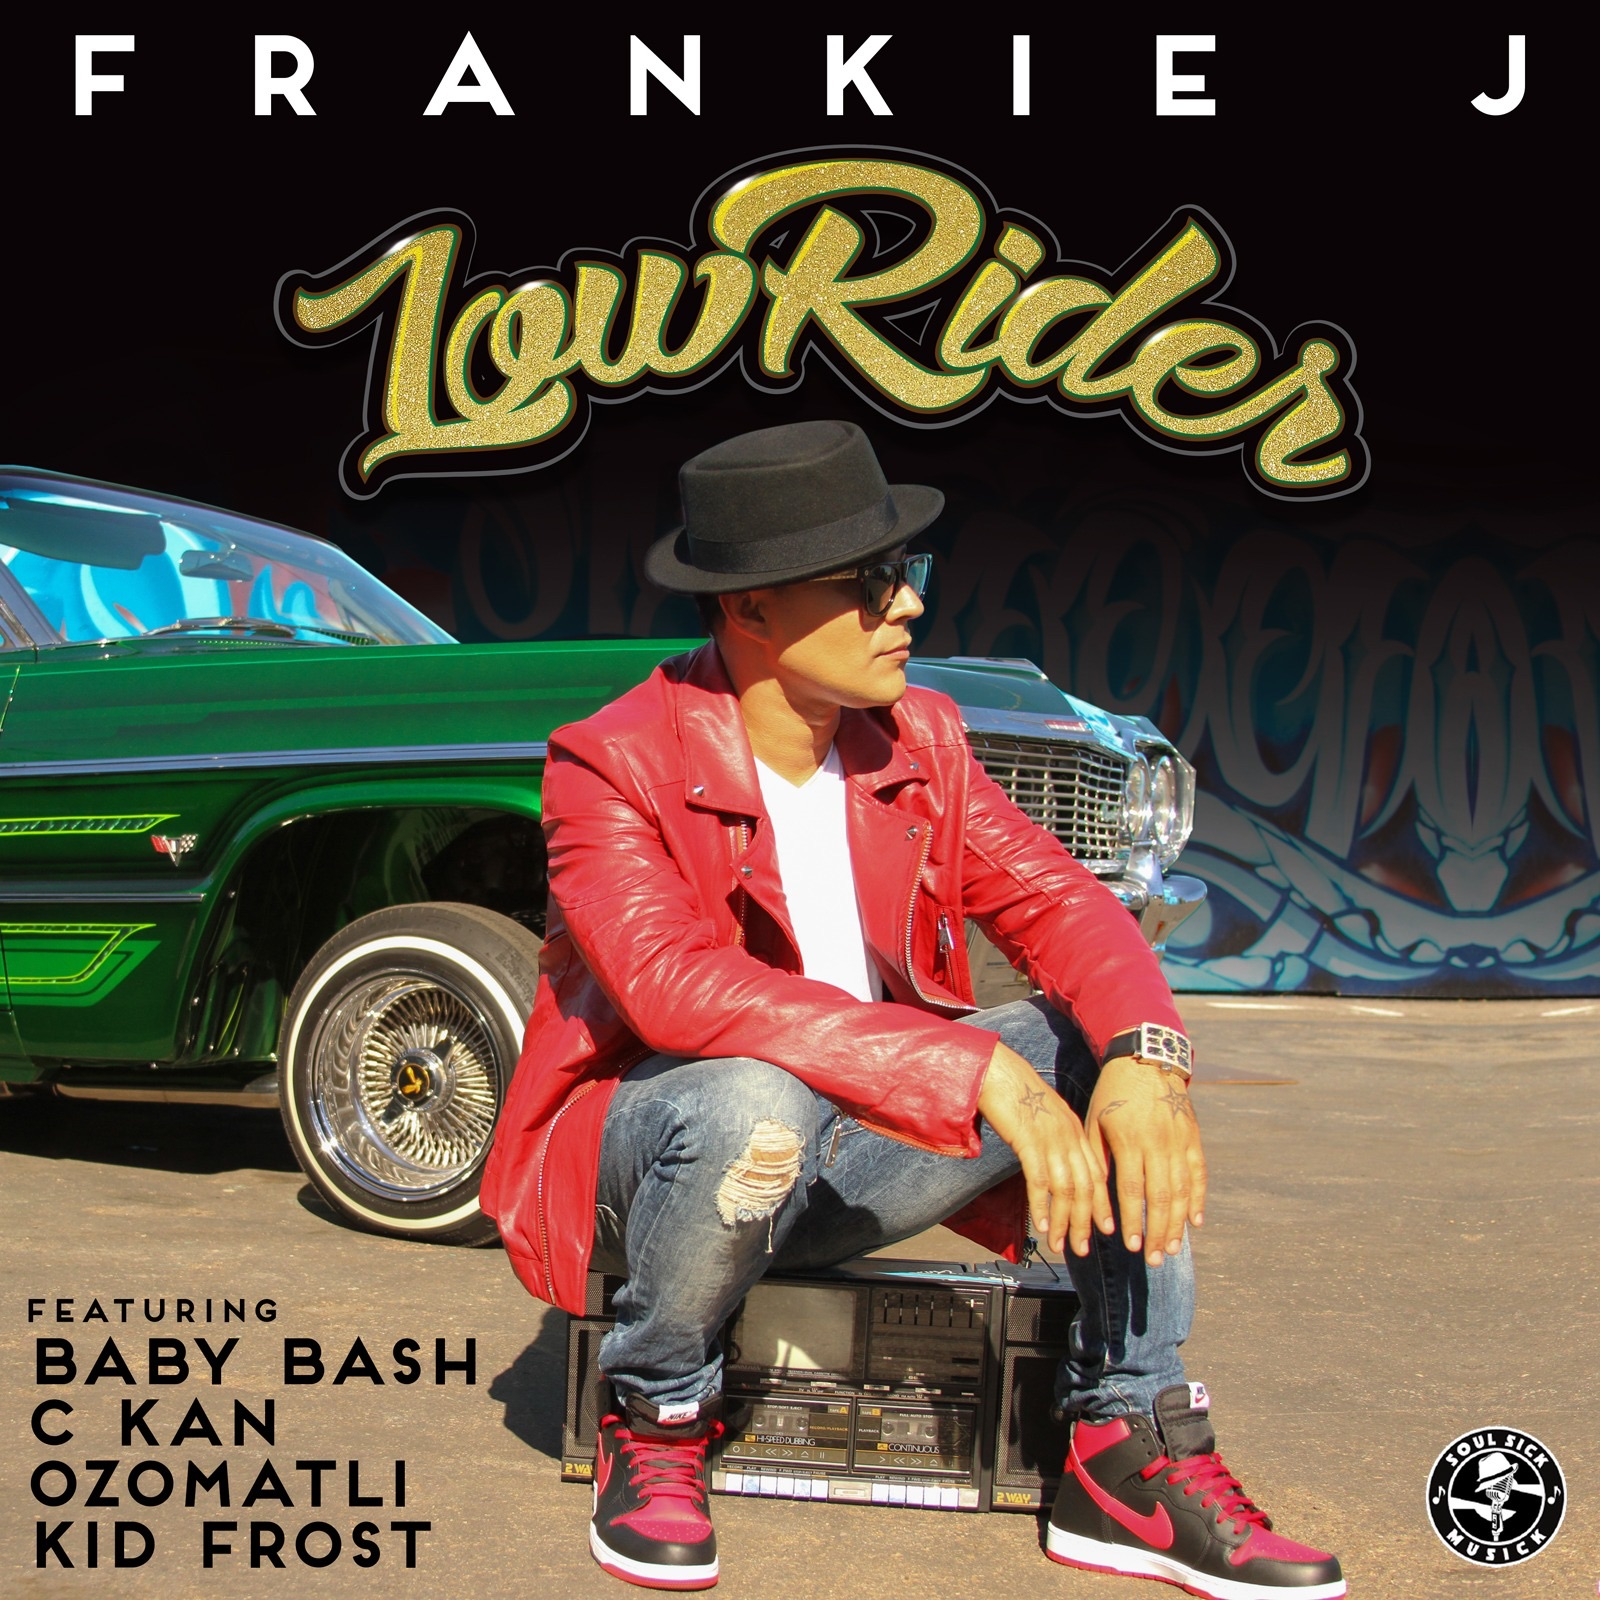 Lowrider (feat. Baby Bash, C Kan, Ozomatli & Kid Frost) - Single